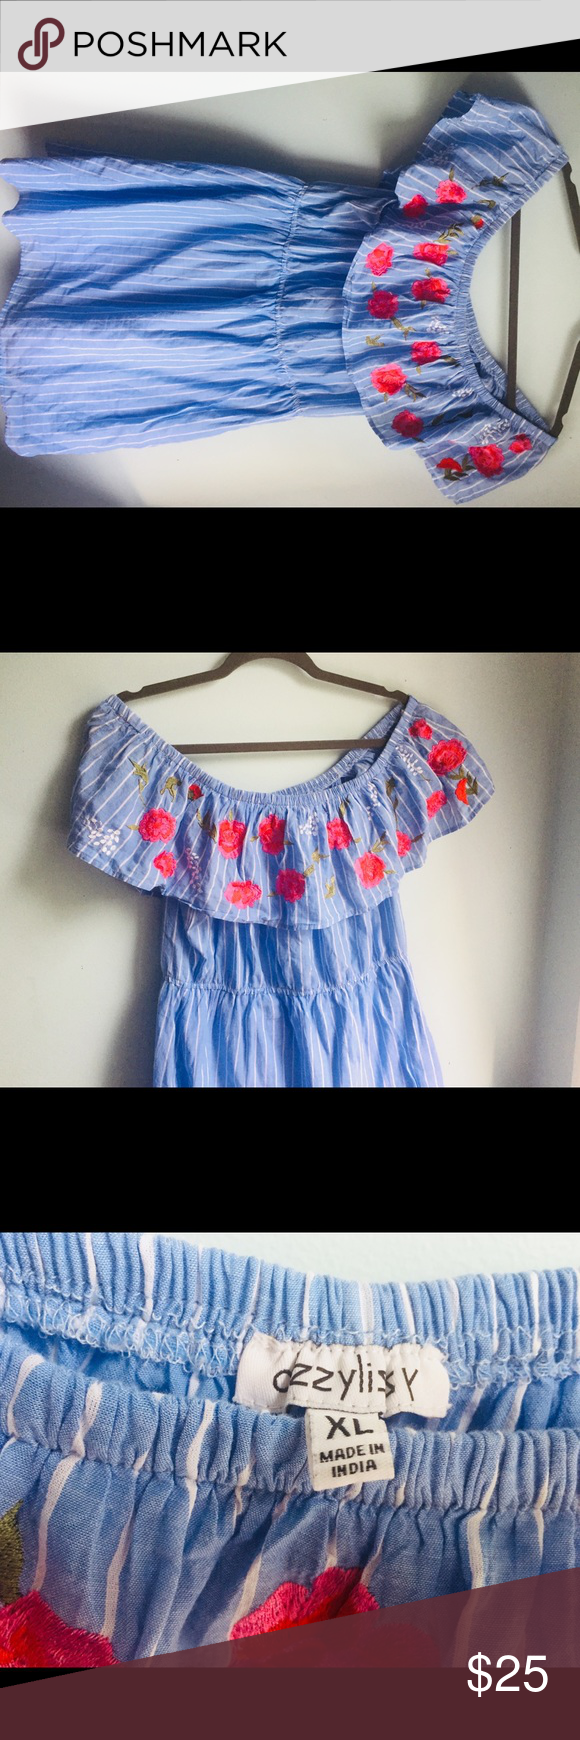 Blue and white striped dress with red flowers red flowers ea and